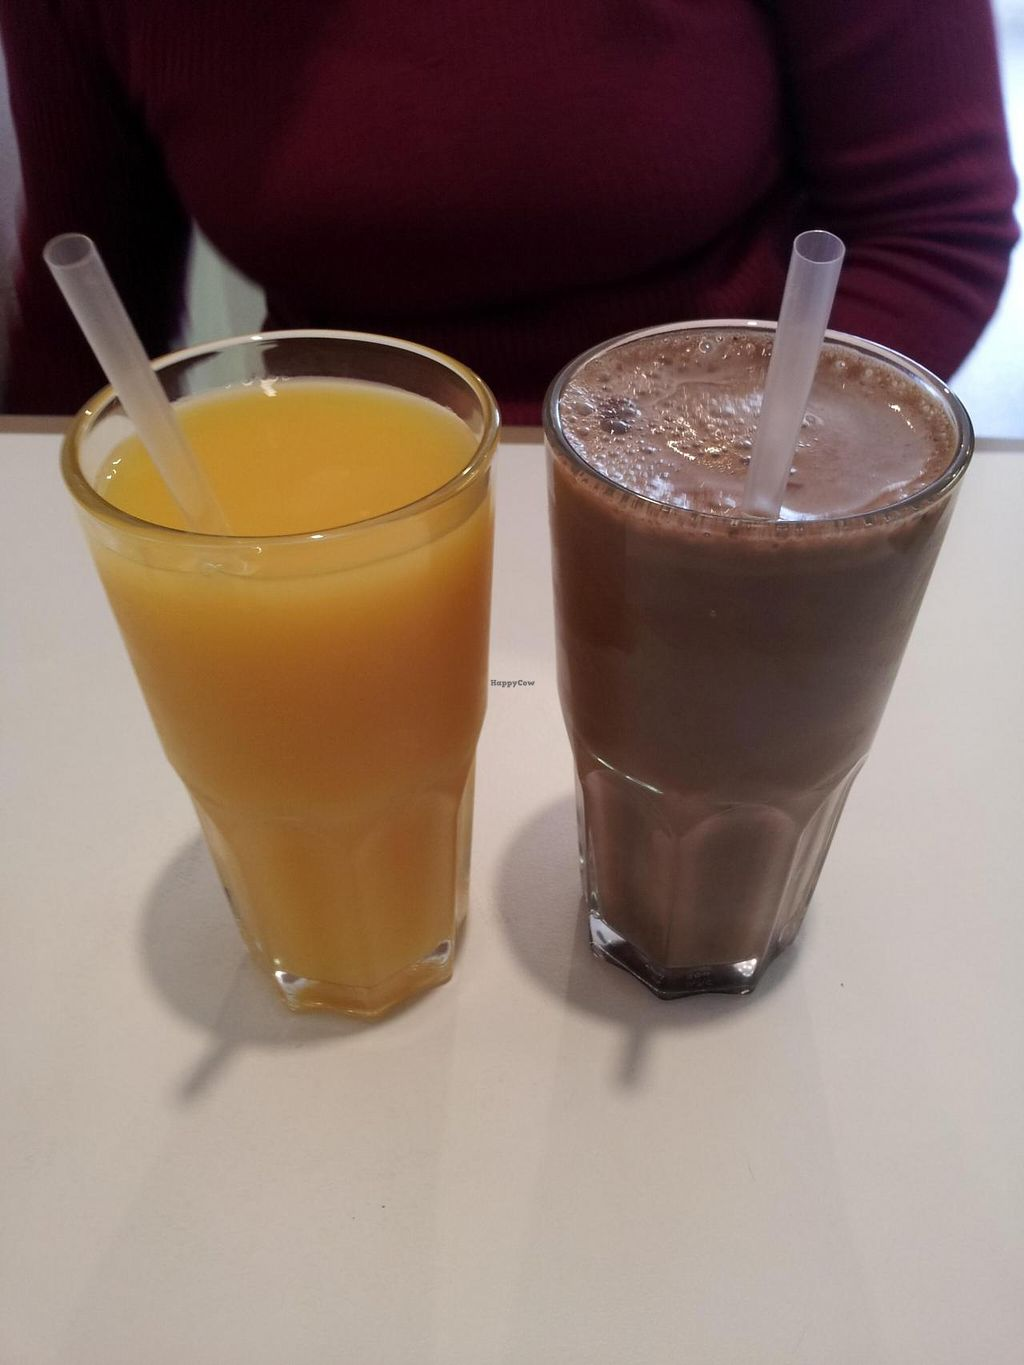 """Photo of Michelle's Cafe  by <a href=""""/members/profile/necius"""">necius</a> <br/>Orange Juice and Chocolate Almond Milk at Michelle's Café.  <br/> June 18, 2015  - <a href='/contact/abuse/image/59578/106488'>Report</a>"""